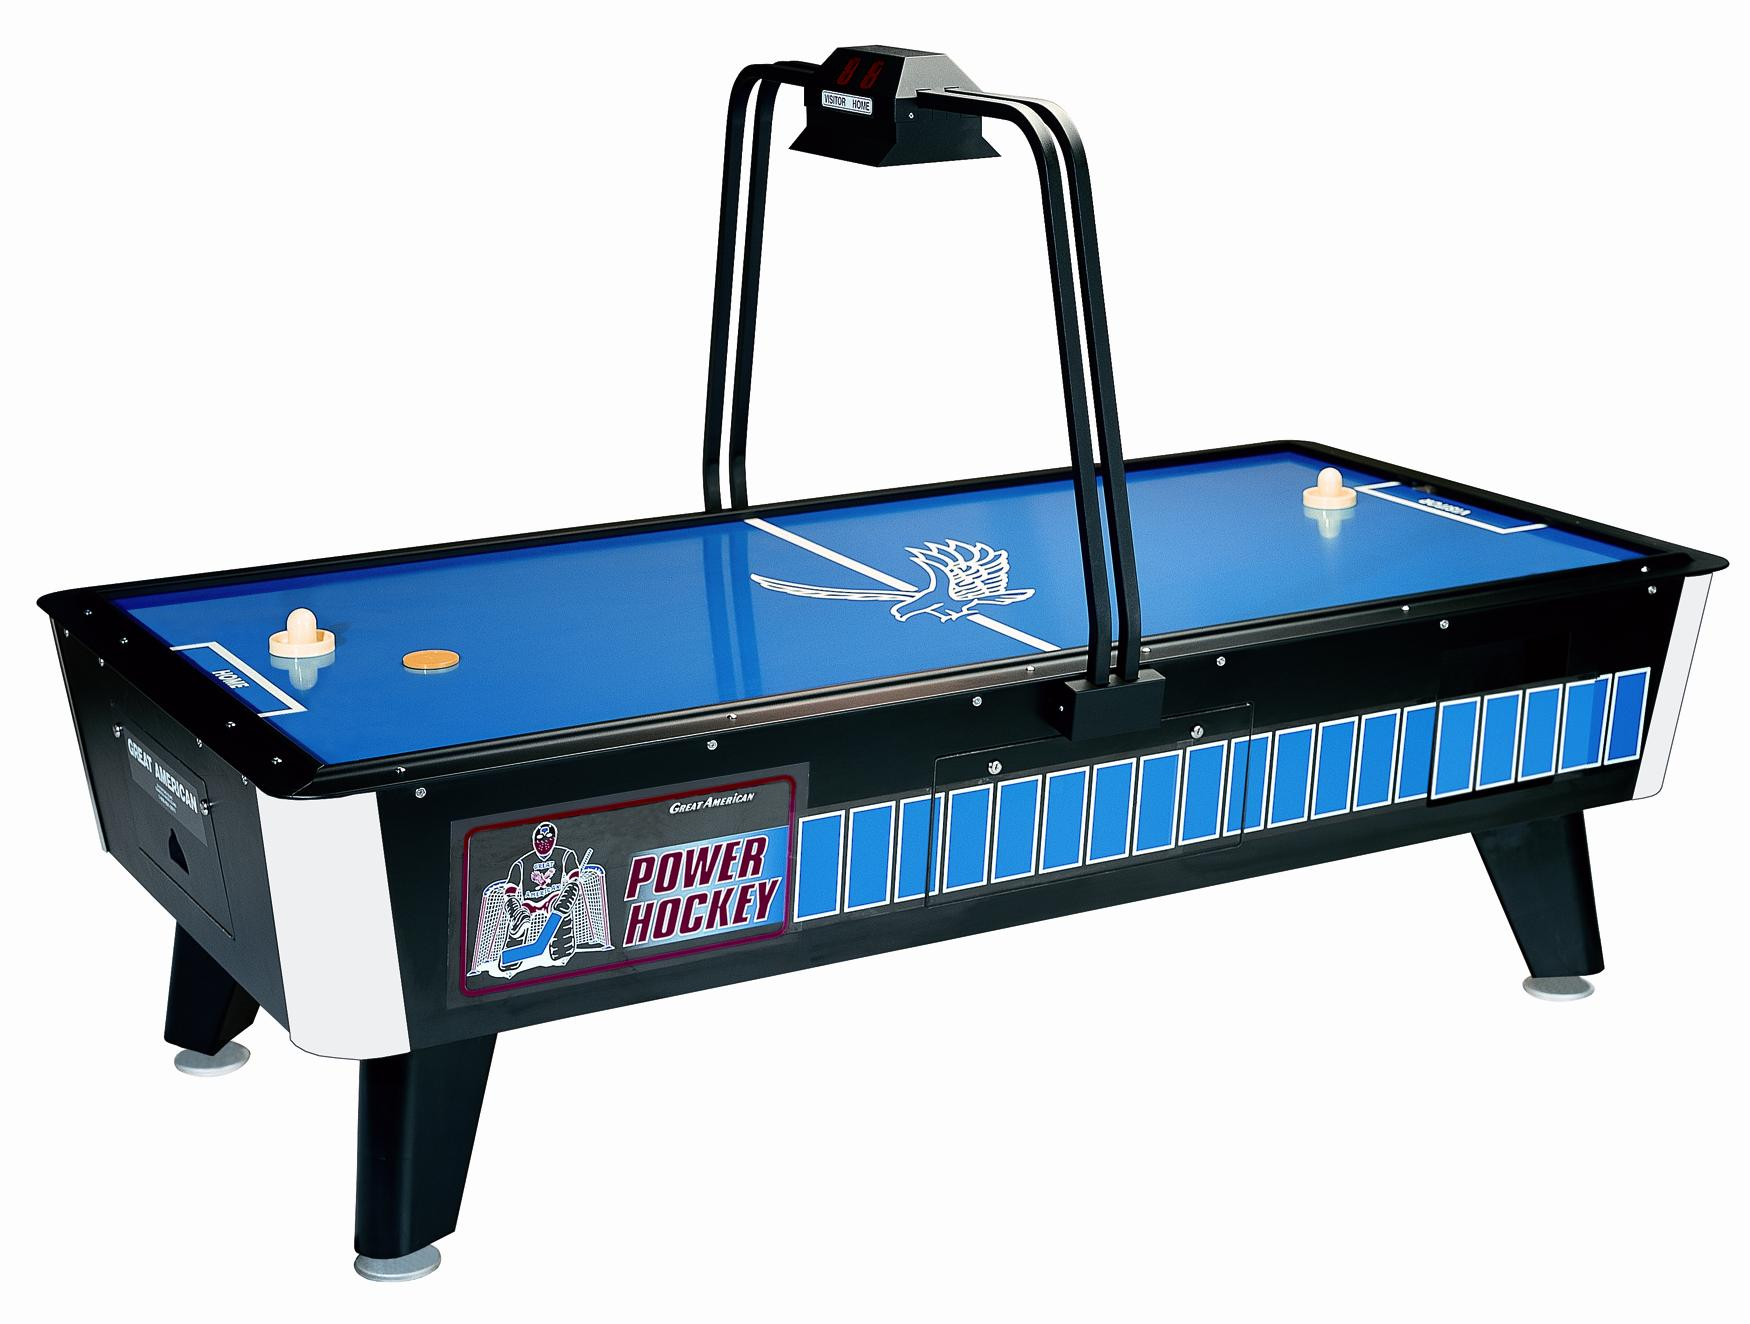 Air hockey table troubleshooting guidegame tables and more power hockey table with overhead scoreboard greentooth